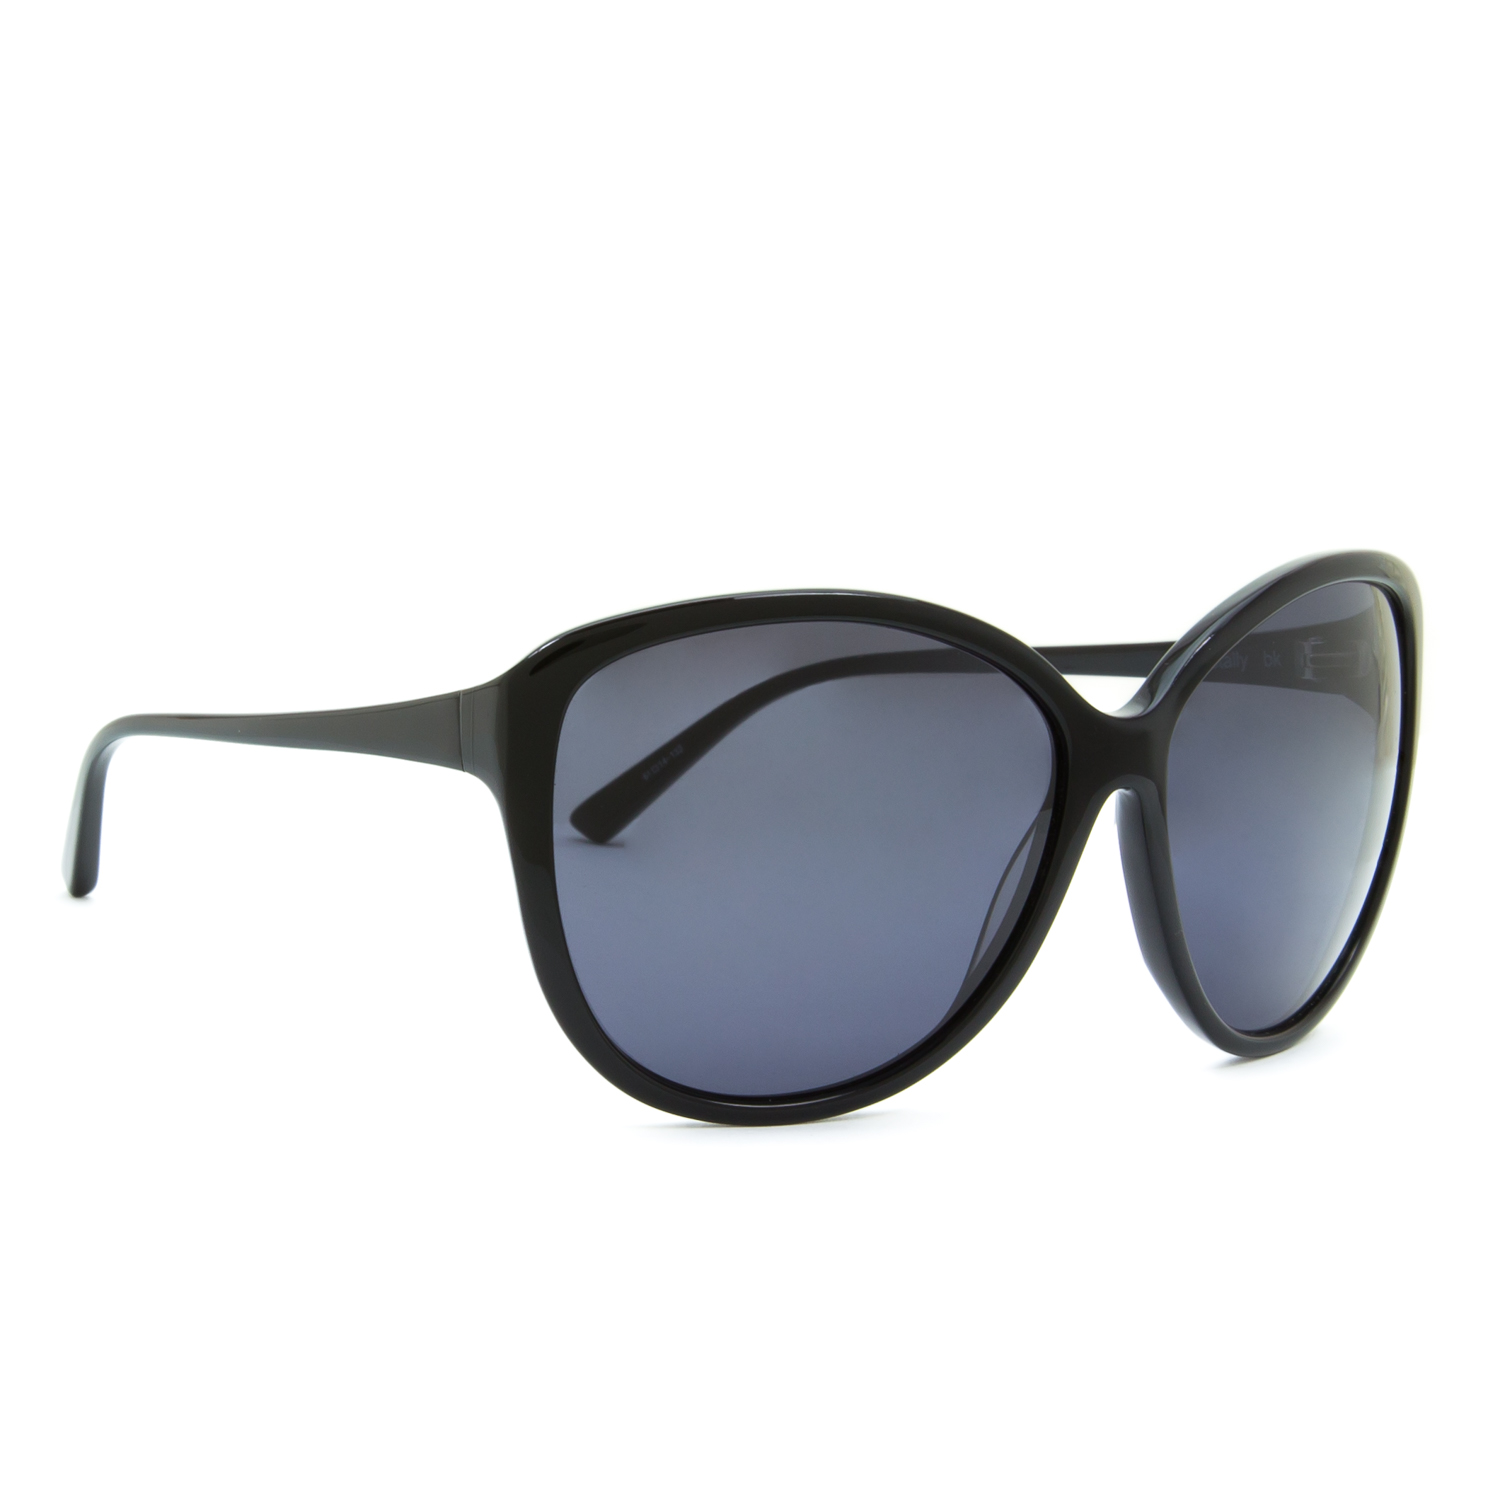 f646a7c646f Neo Sunglasses Blinde Design